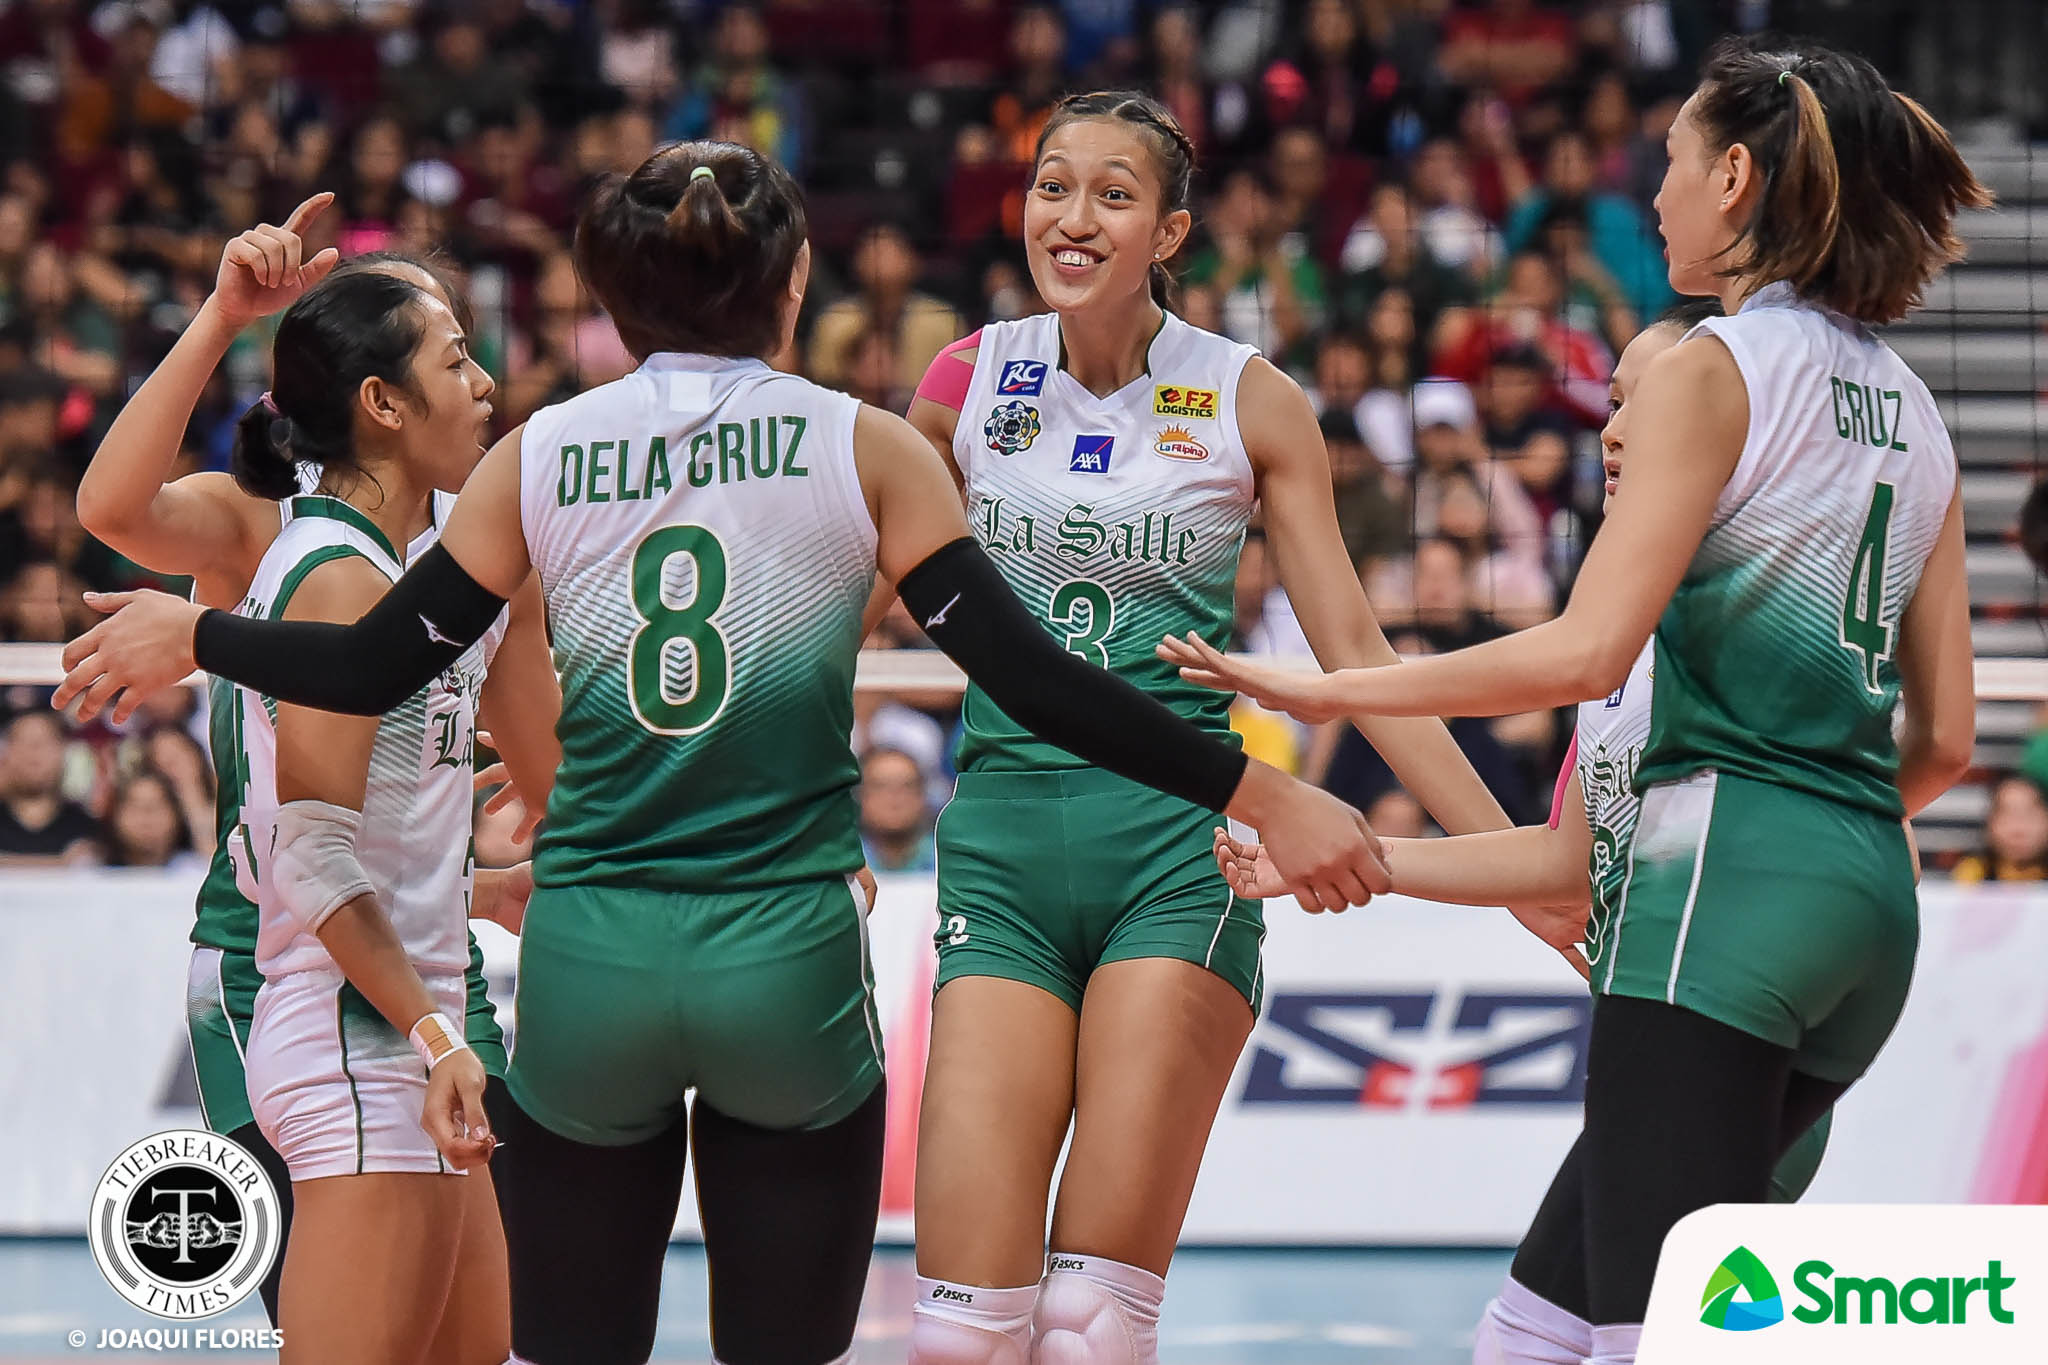 Tiebreaker Times Ateneo-La Salle rivalry heightens tension of NSNU Lady Bullpups reunion ADMU DLSU News UAAP Volleyball  UAAP Season 82 Women's Volleyball UAAP Season 82 thea gagate Roma Mae Doromal Faith Nisperos DLSU Women's Volleyball Ateneo Women's Volleyball